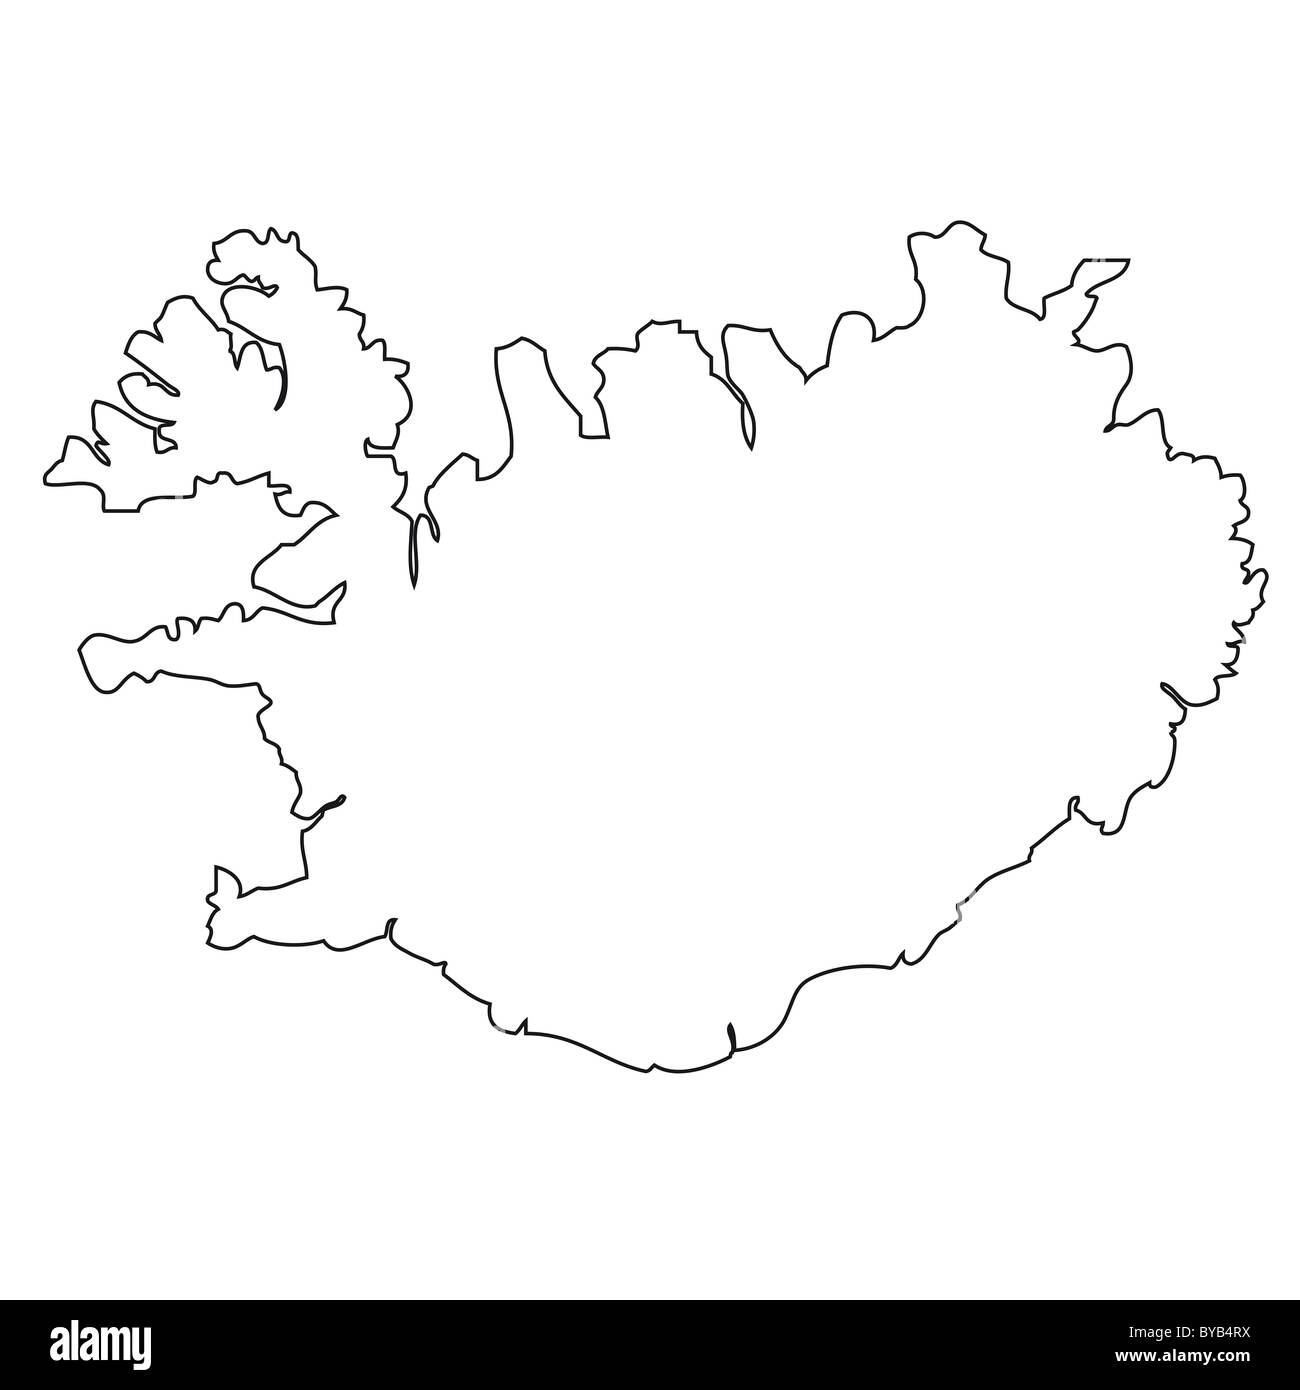 Image of: Outline Map Of Iceland Stock Photo Alamy